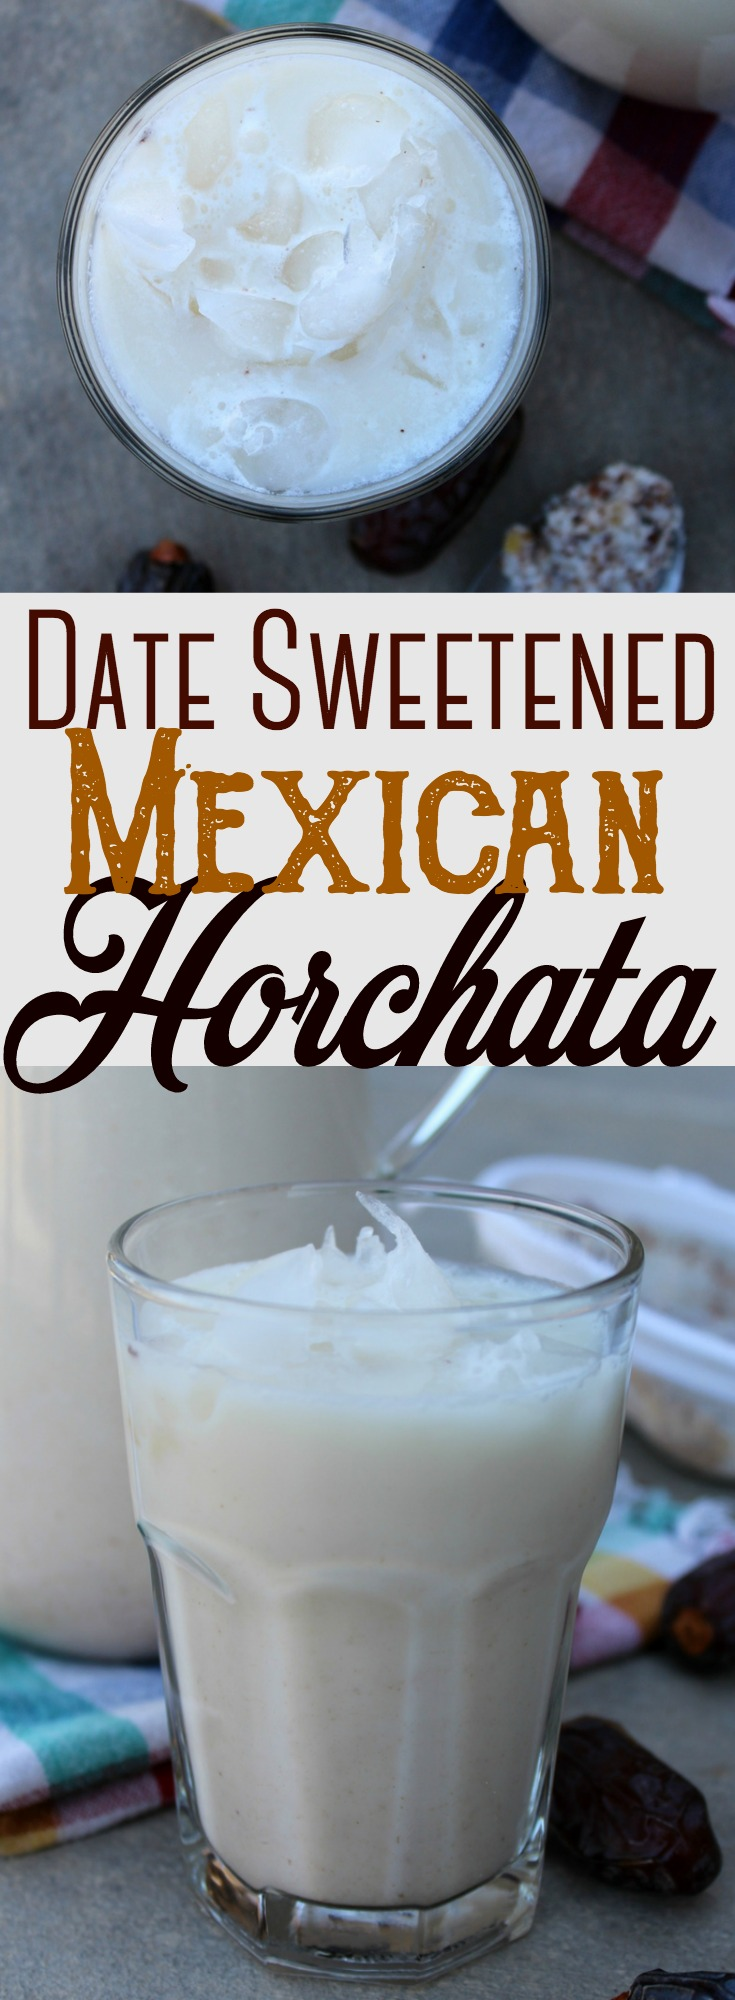 Date Sweetened Mexican Horchata: A creamy, healthy and simple homemade Mexican Horchata that's naturally sweetened with medjool dates.  #healthy #horchata #Mexican #CincodeMayo #norefinedsugar #dates